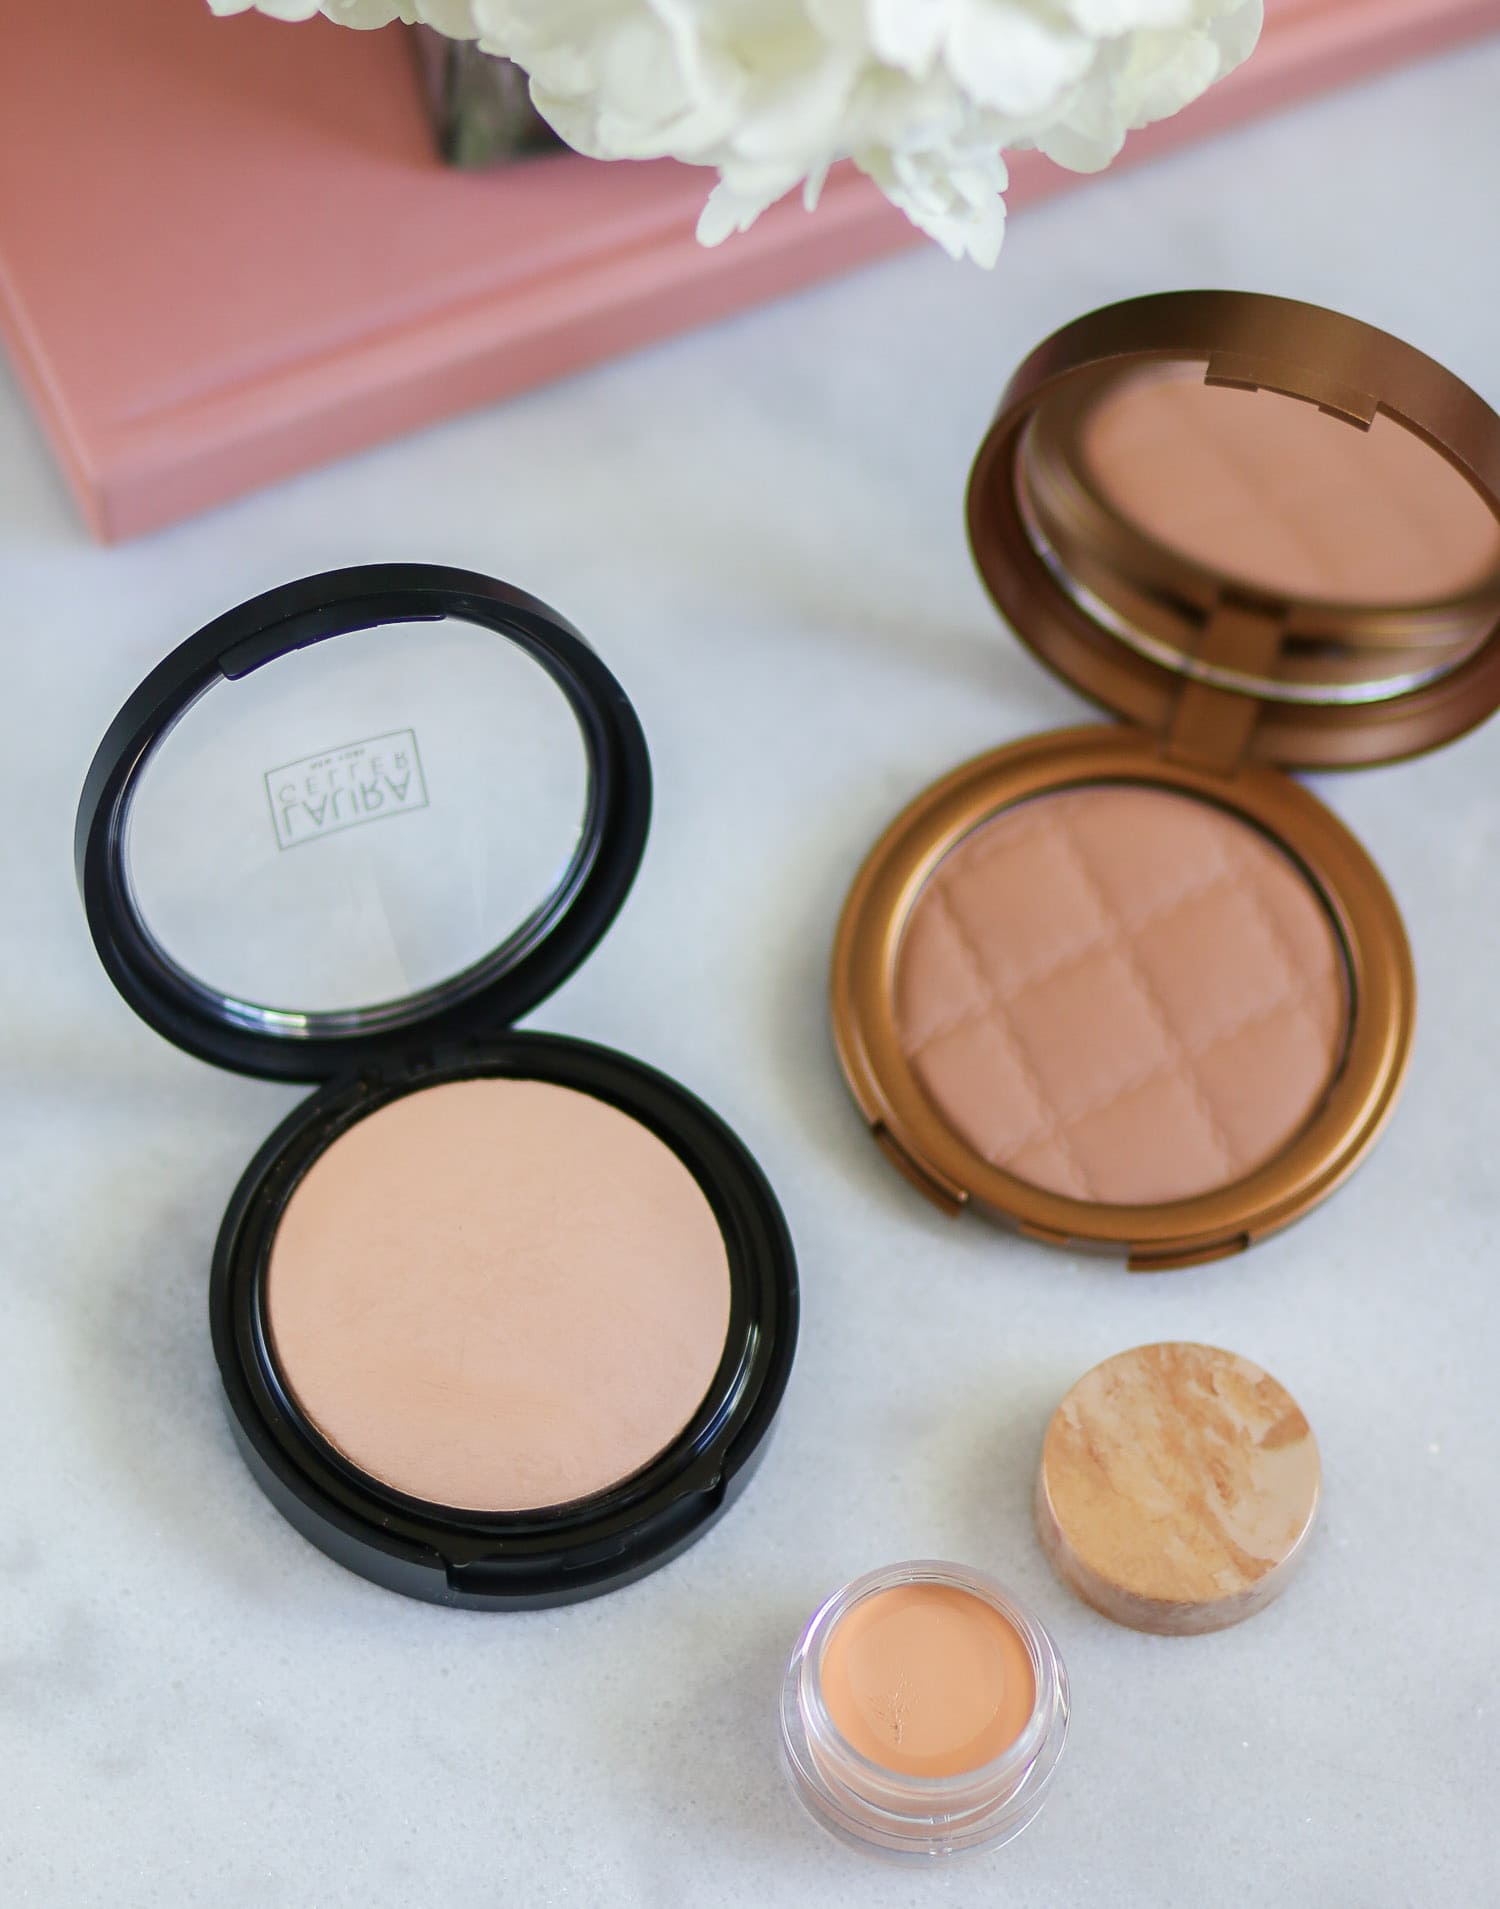 The Laura Geller Double Take Baked Versatile Powder Foundation is seriously incredible. You can use a brush to get light to medium coverage or a sponge to get a full-coverage finish WITHOUT a powdery finish. Even though it's a powder, the finished result looks like liquid foundation. You can also use it wet for a luminous full-coverage finish. Available in 9 shades at Ulta. Click through to see a full review of @laurageller from beauty blogger Ashley Brooke!